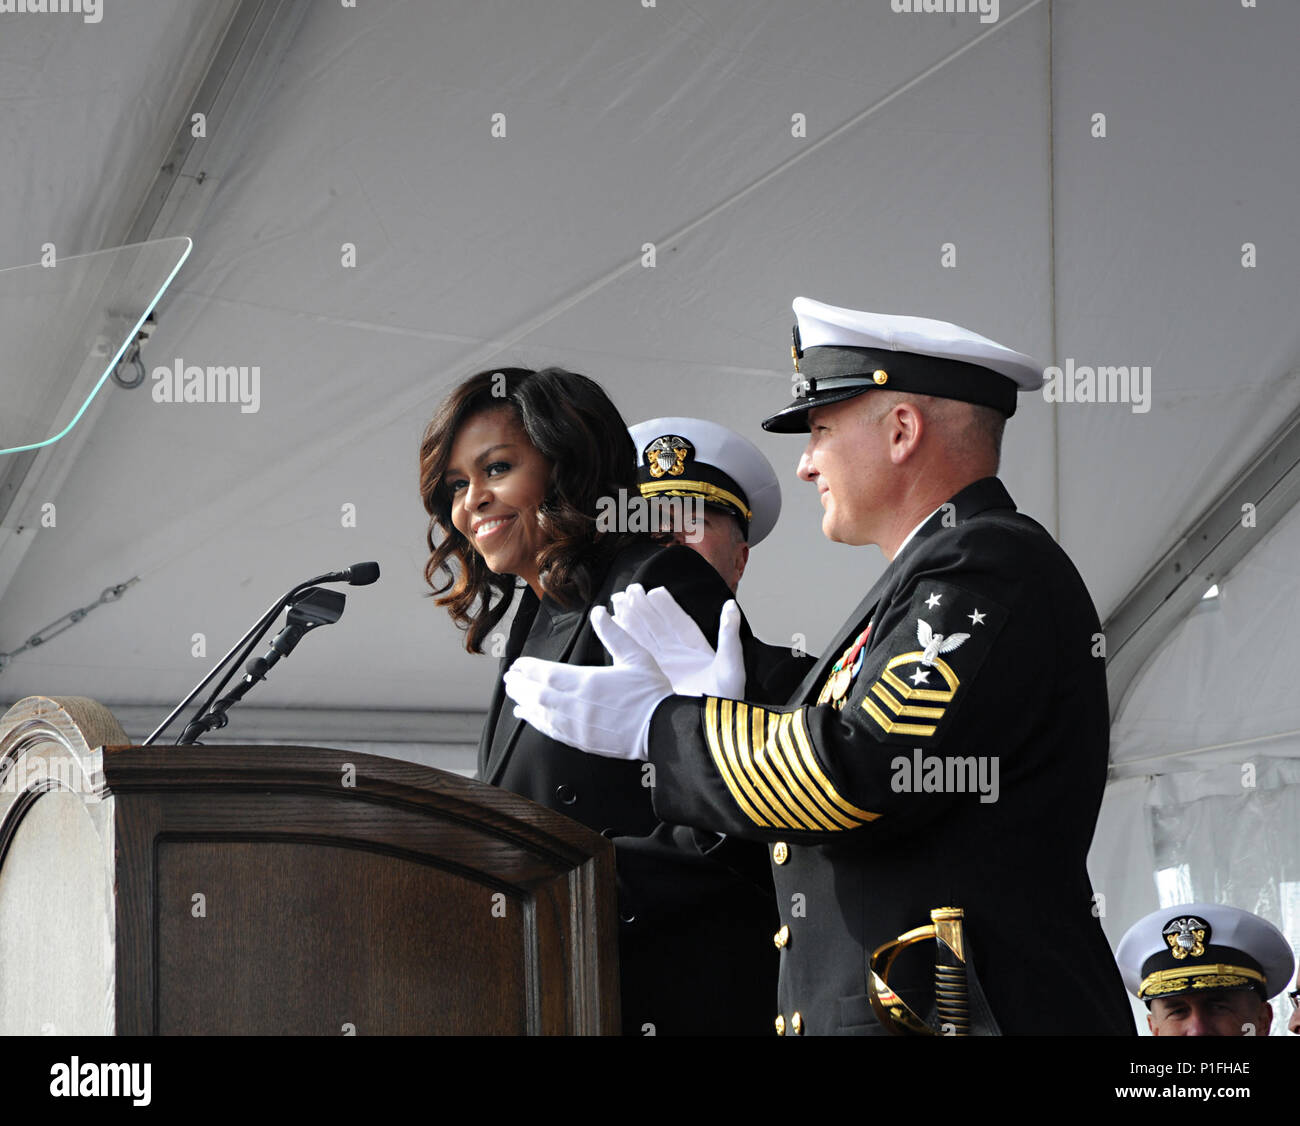 161029-N-HI707-293  GROTON, Conn. (Oct. 29, 2016) First Lady Michelle Obama announces 'Bring the Ship to Life' spurring its crew members to race across the brow and fall in formation aboard USS Illinois (SSN 786) during the commissioning ceremony on Naval Submarine Base New London, Oct. 29. USS Illinois is the U.S. Navy's 13th Virginia-Class attack submarine and the fourth ship named for the State of Illinois. (U.S. Navy photo by Chief Petty Officer Darryl I. Wood/Released) - Stock Image